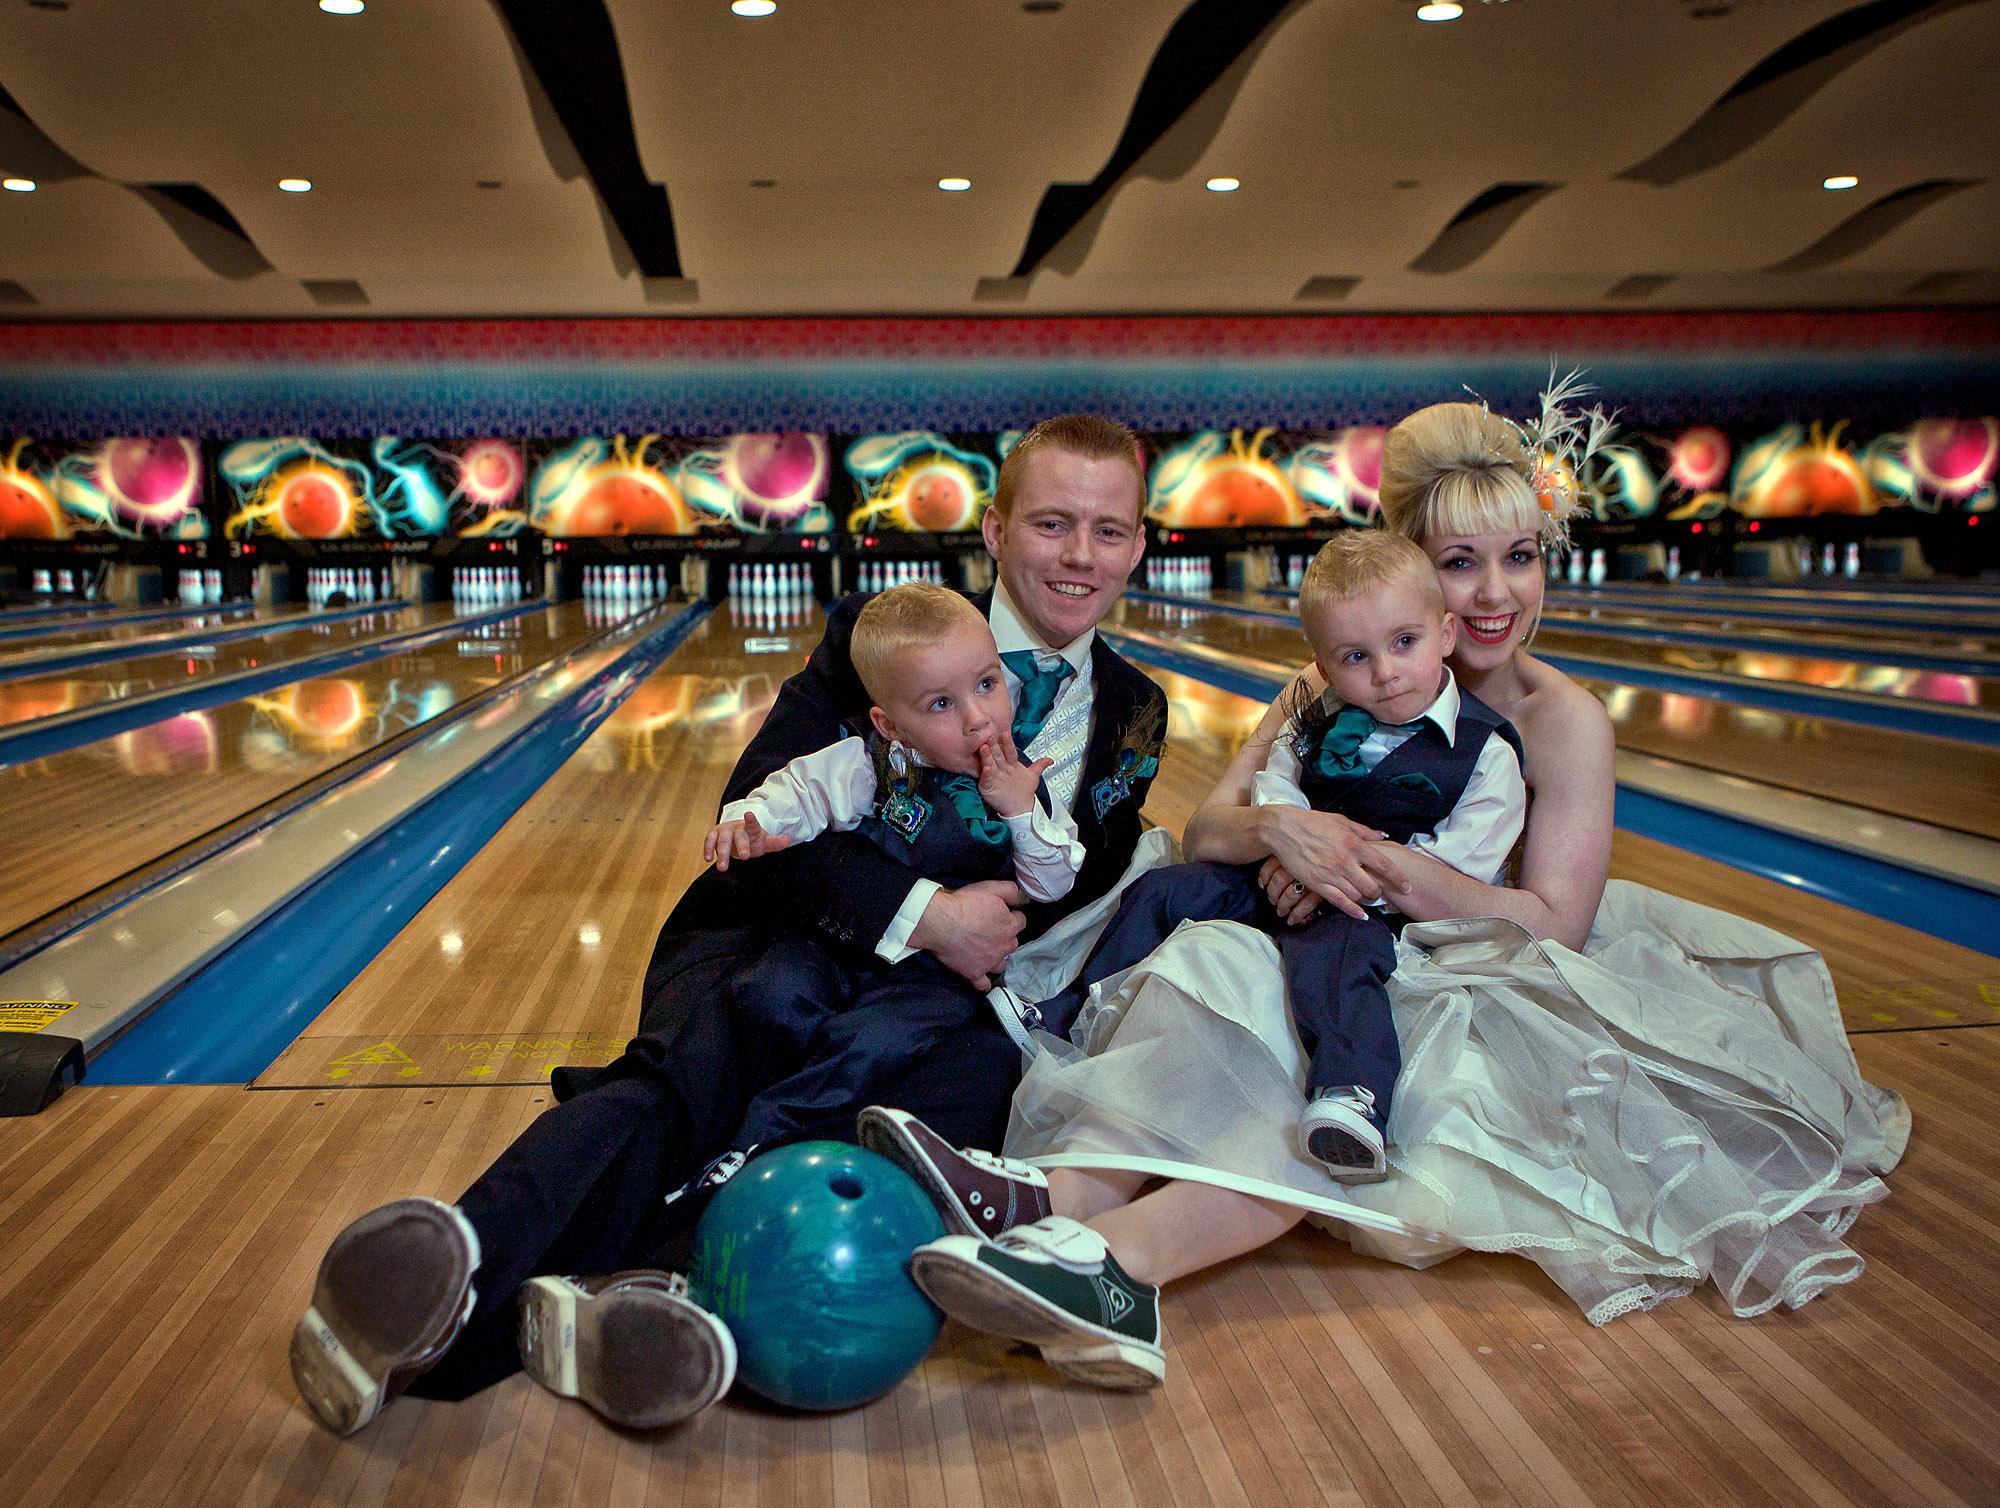 And the bride wore…bowling shoes